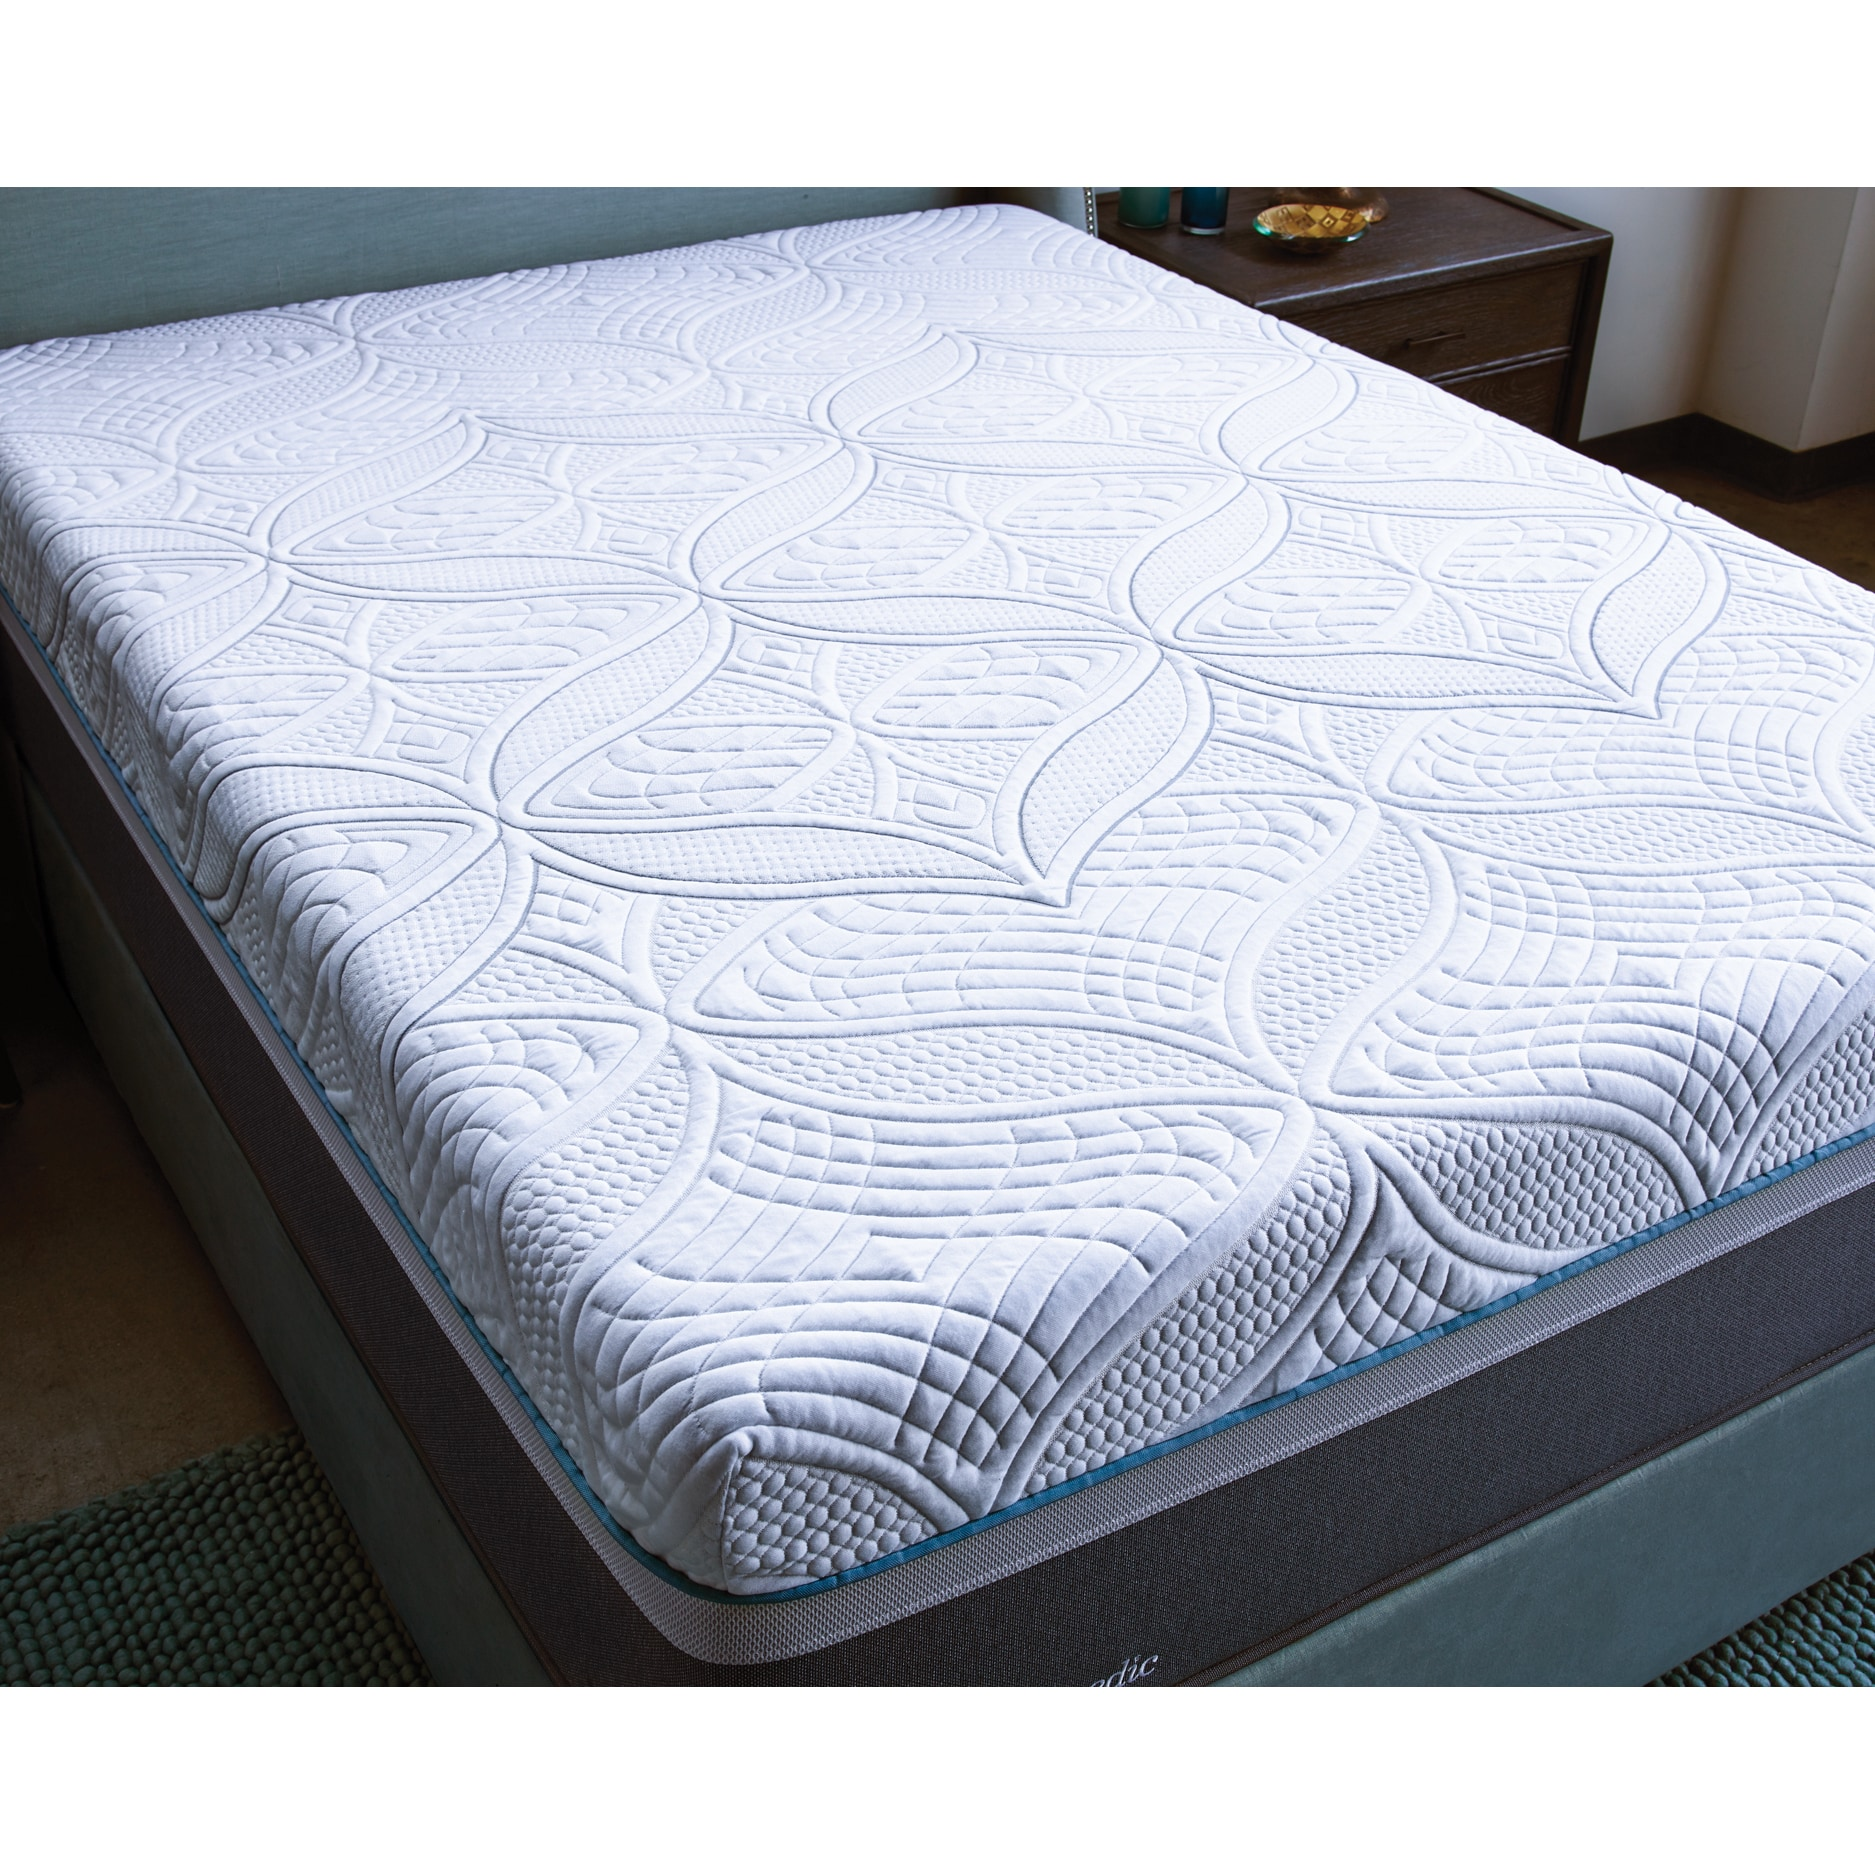 Sealy Posturepedic Hybrid Cobalt Firm Queen Size Mattress Free Shipping Today 12521047